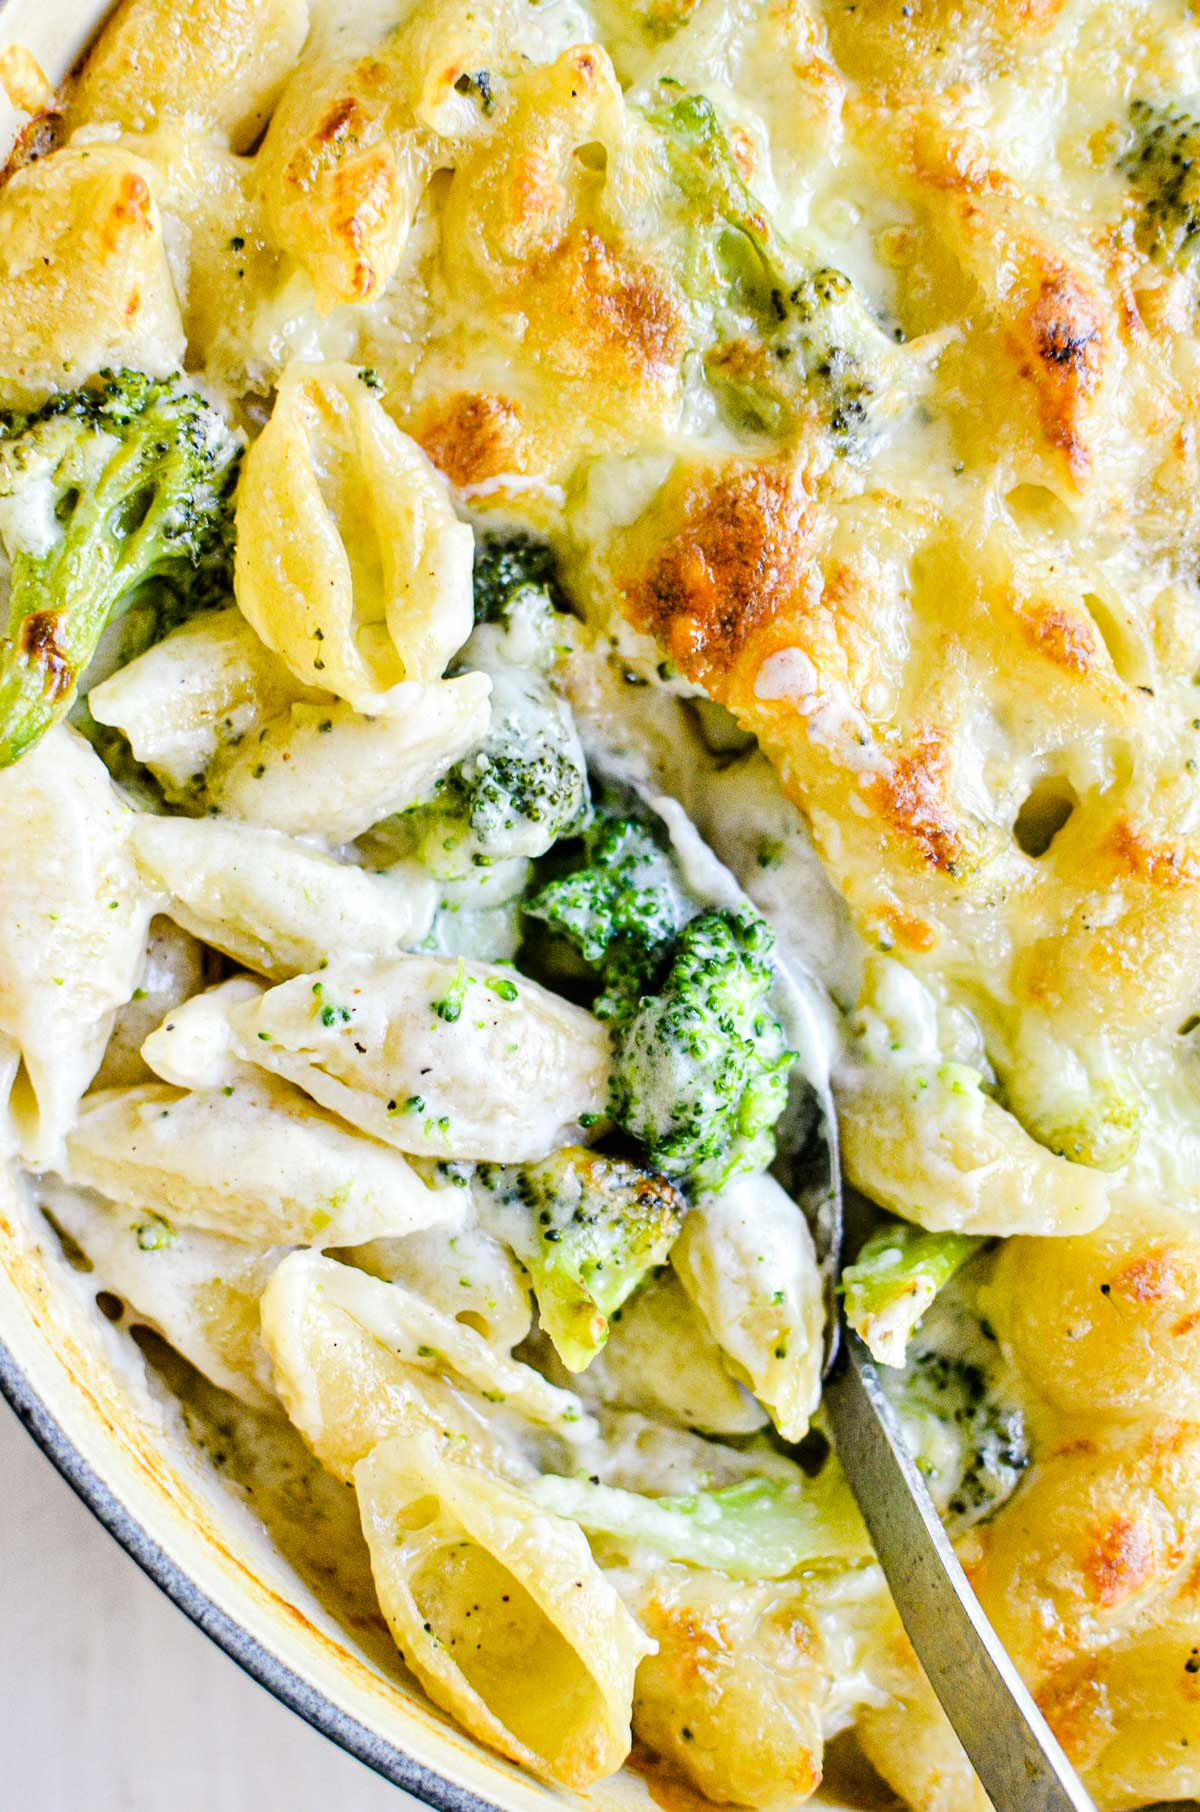 broccoli and cheddar baked shells, with spoon